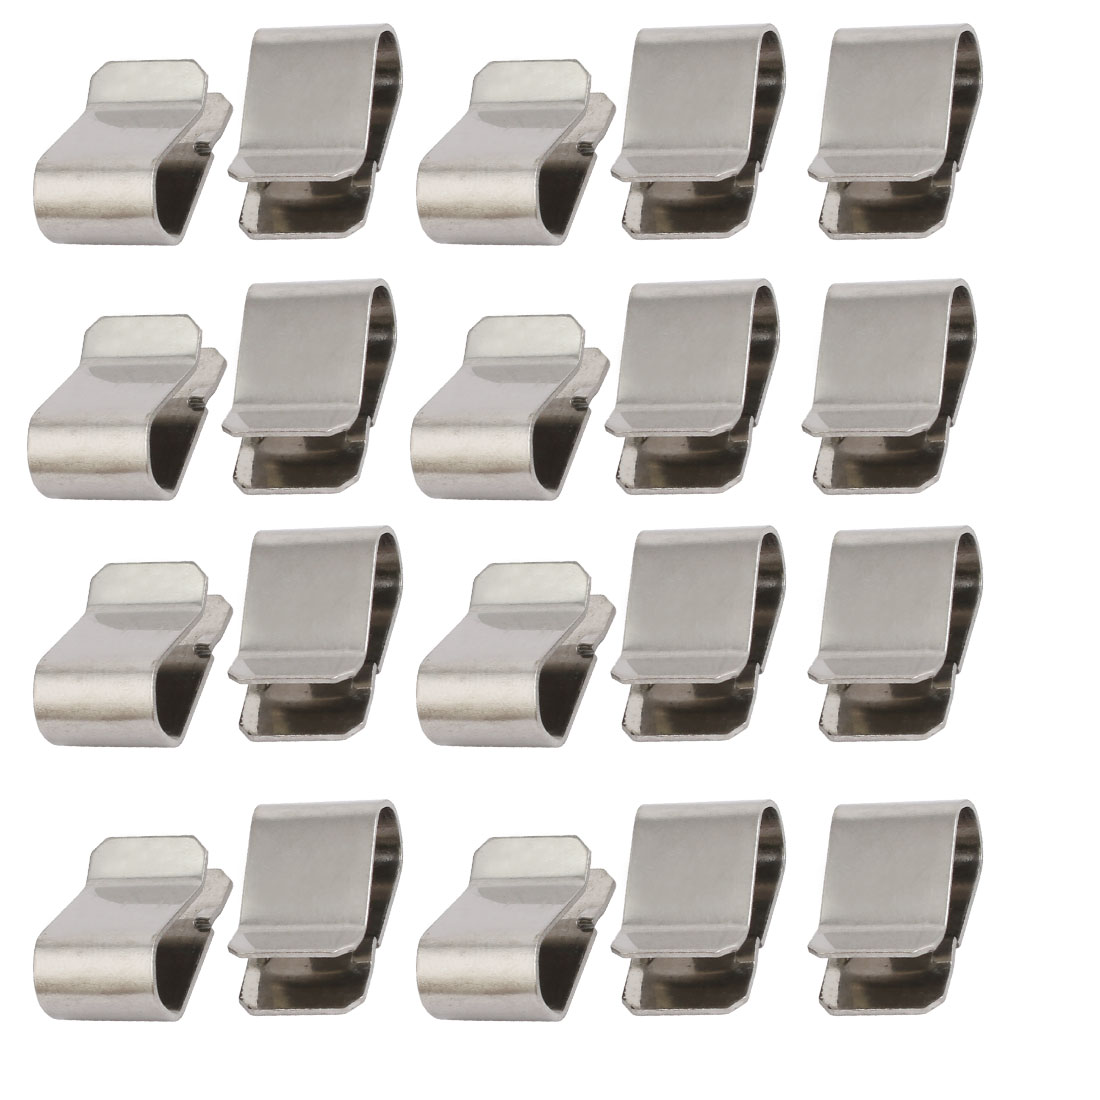 20pcs Stainless Steel Spring U Clip Silver Tone 21.4mm x 12mm